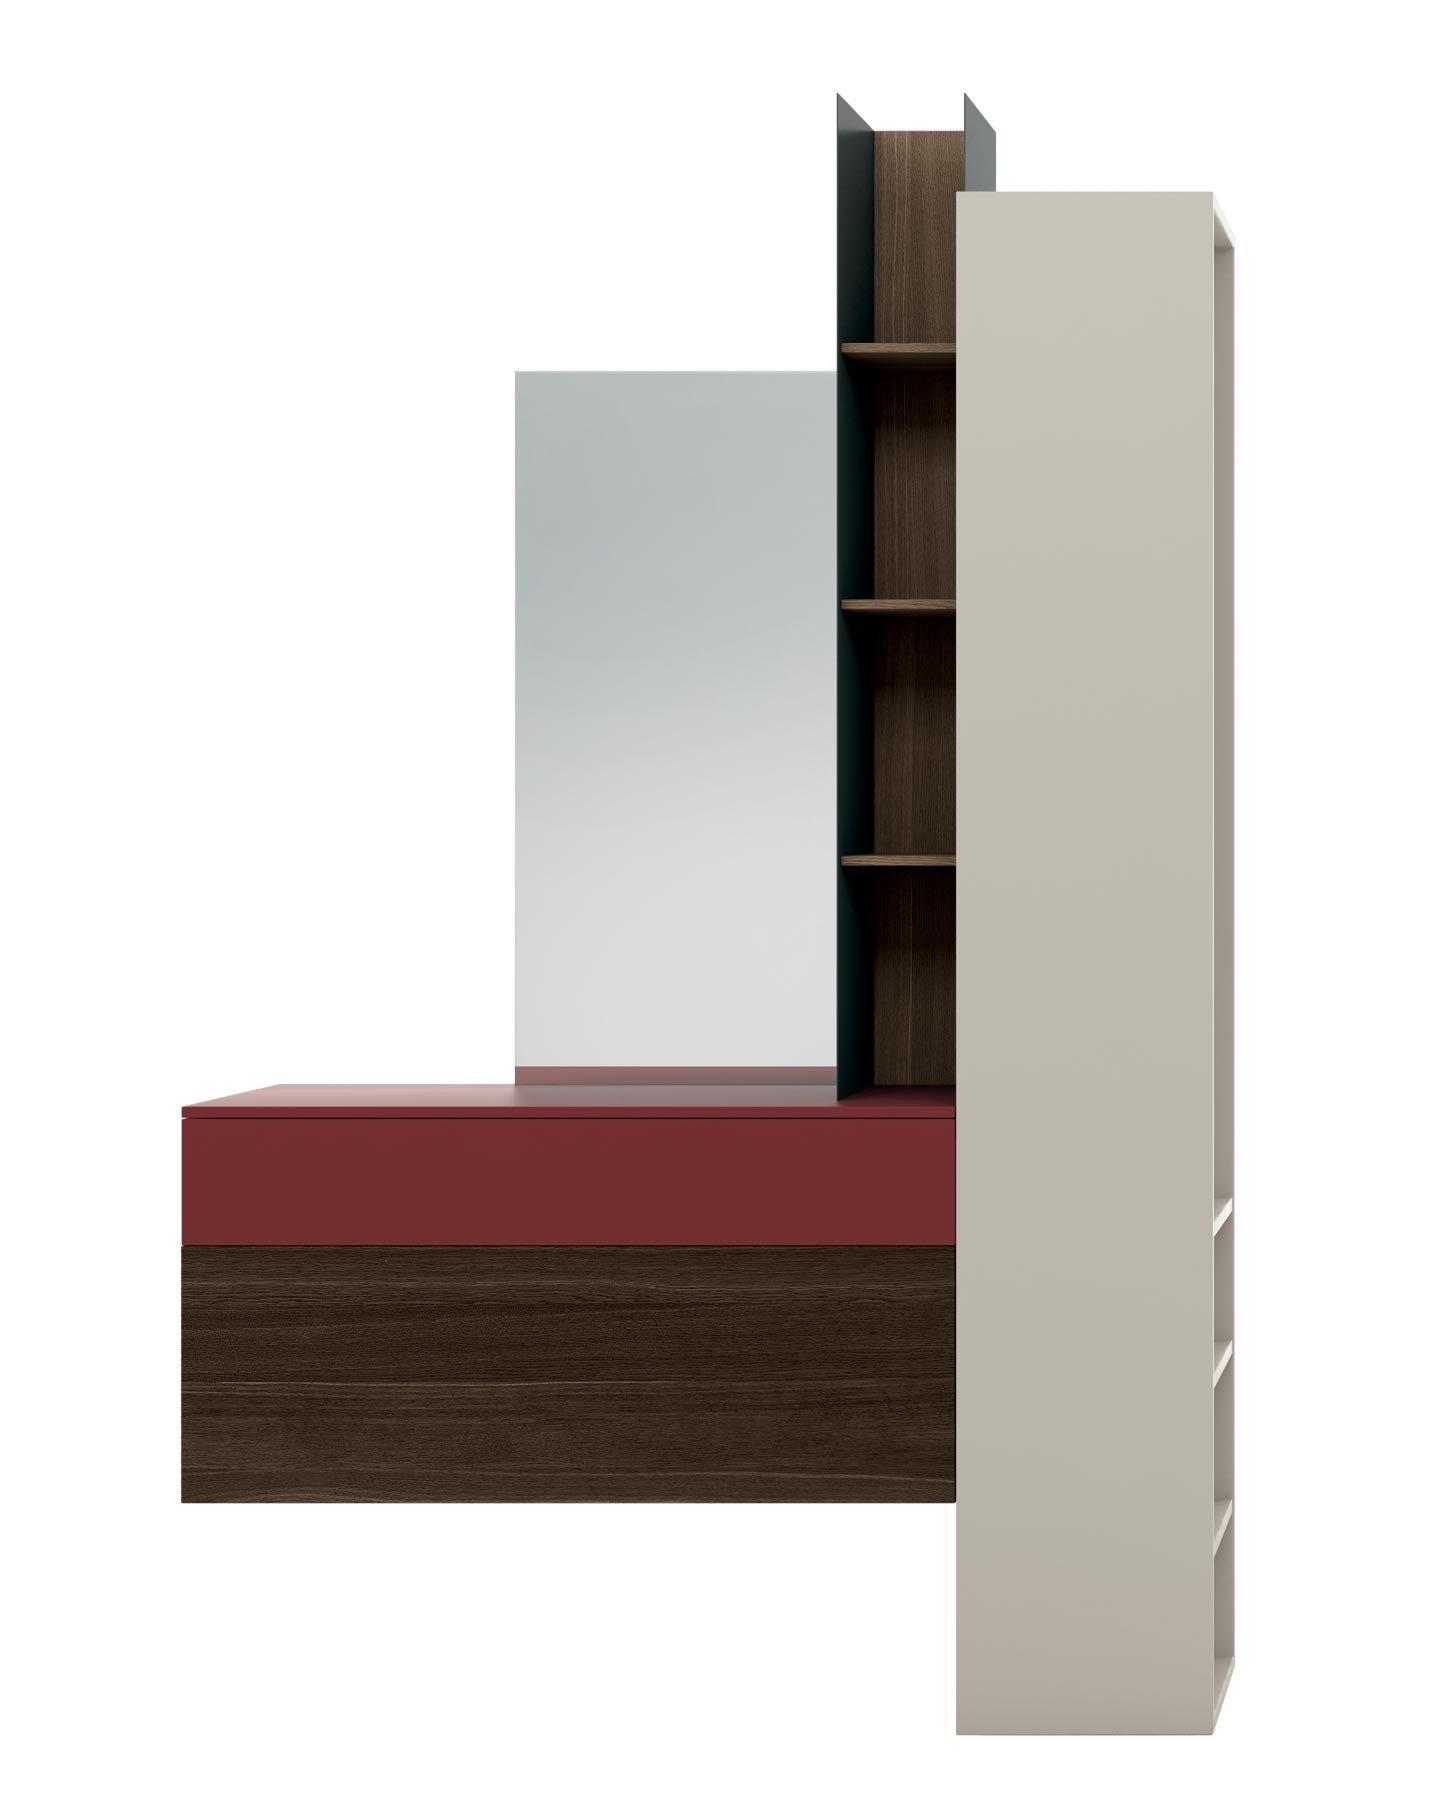 Ingressi Hall Unit accessory from Tomasella